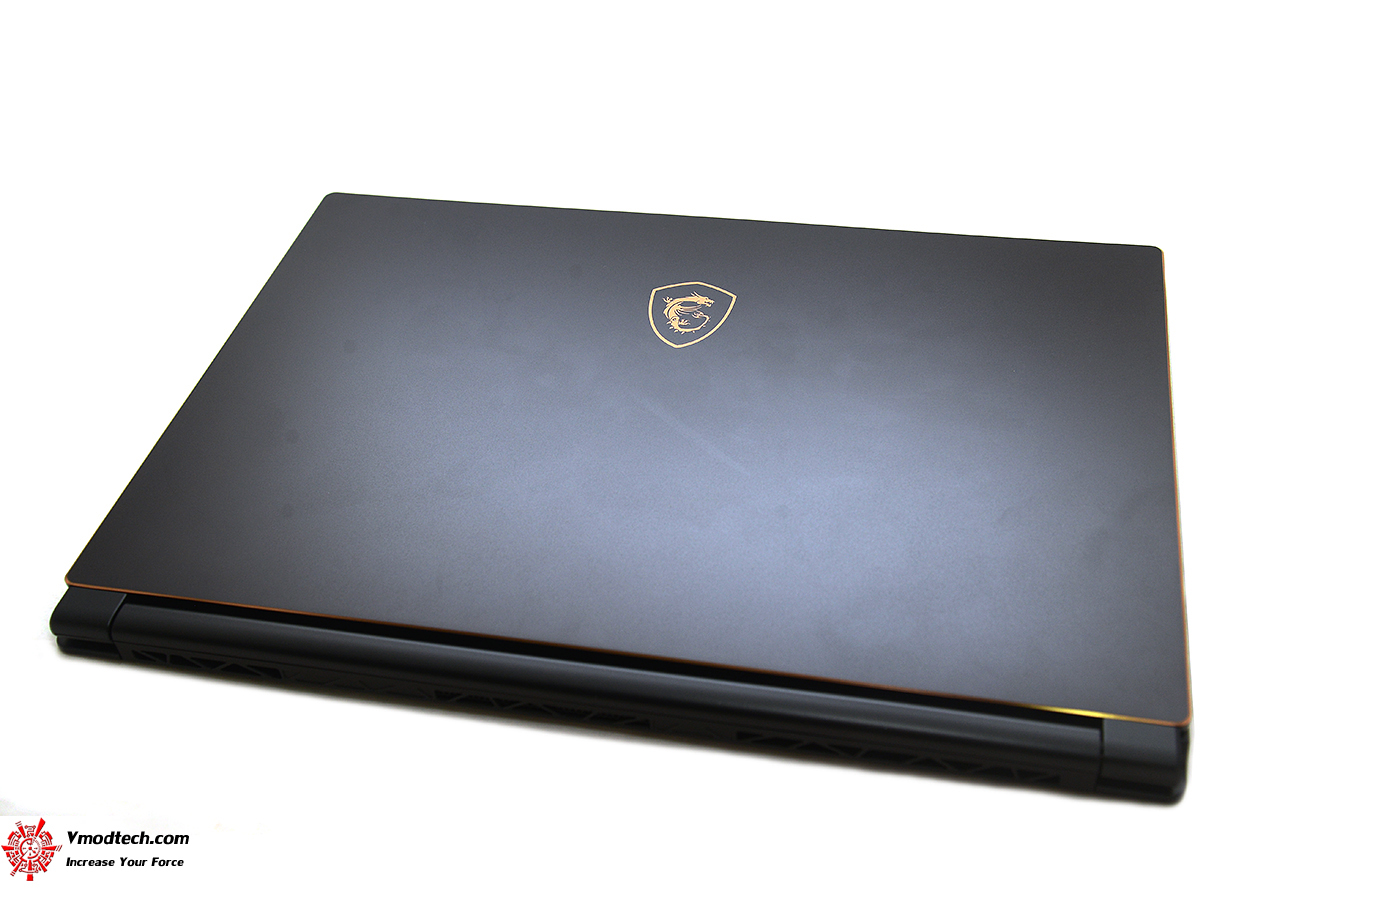 dsc 49971 MSI GS65 Stealth Thin 8RE Review